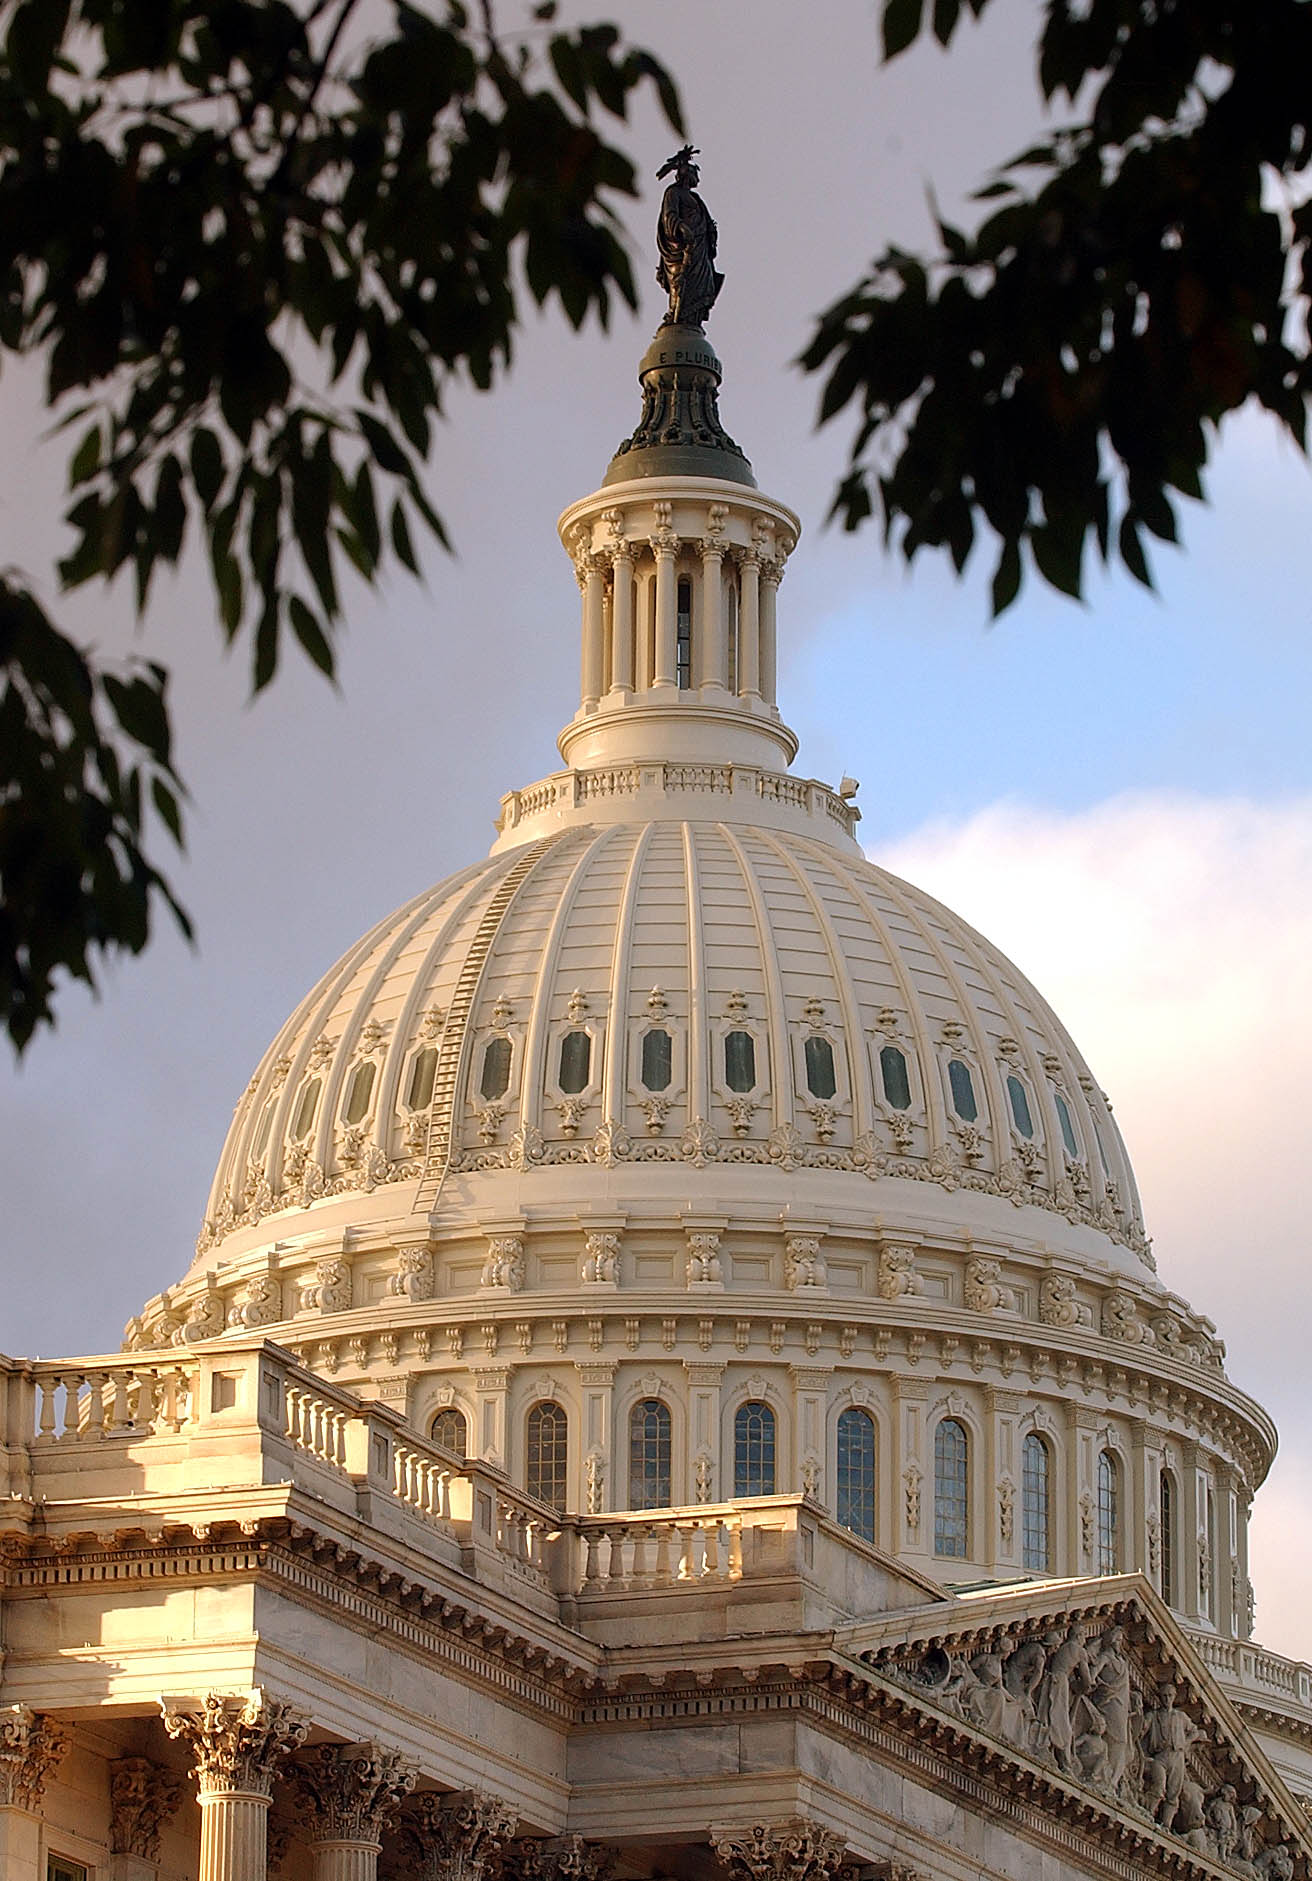 The U.S. Capitol Building in Washington, as seen in an Oct 17th, 2002 photo. Some experts believe Republicans may win control of the House again in the 2022 midterm elections.